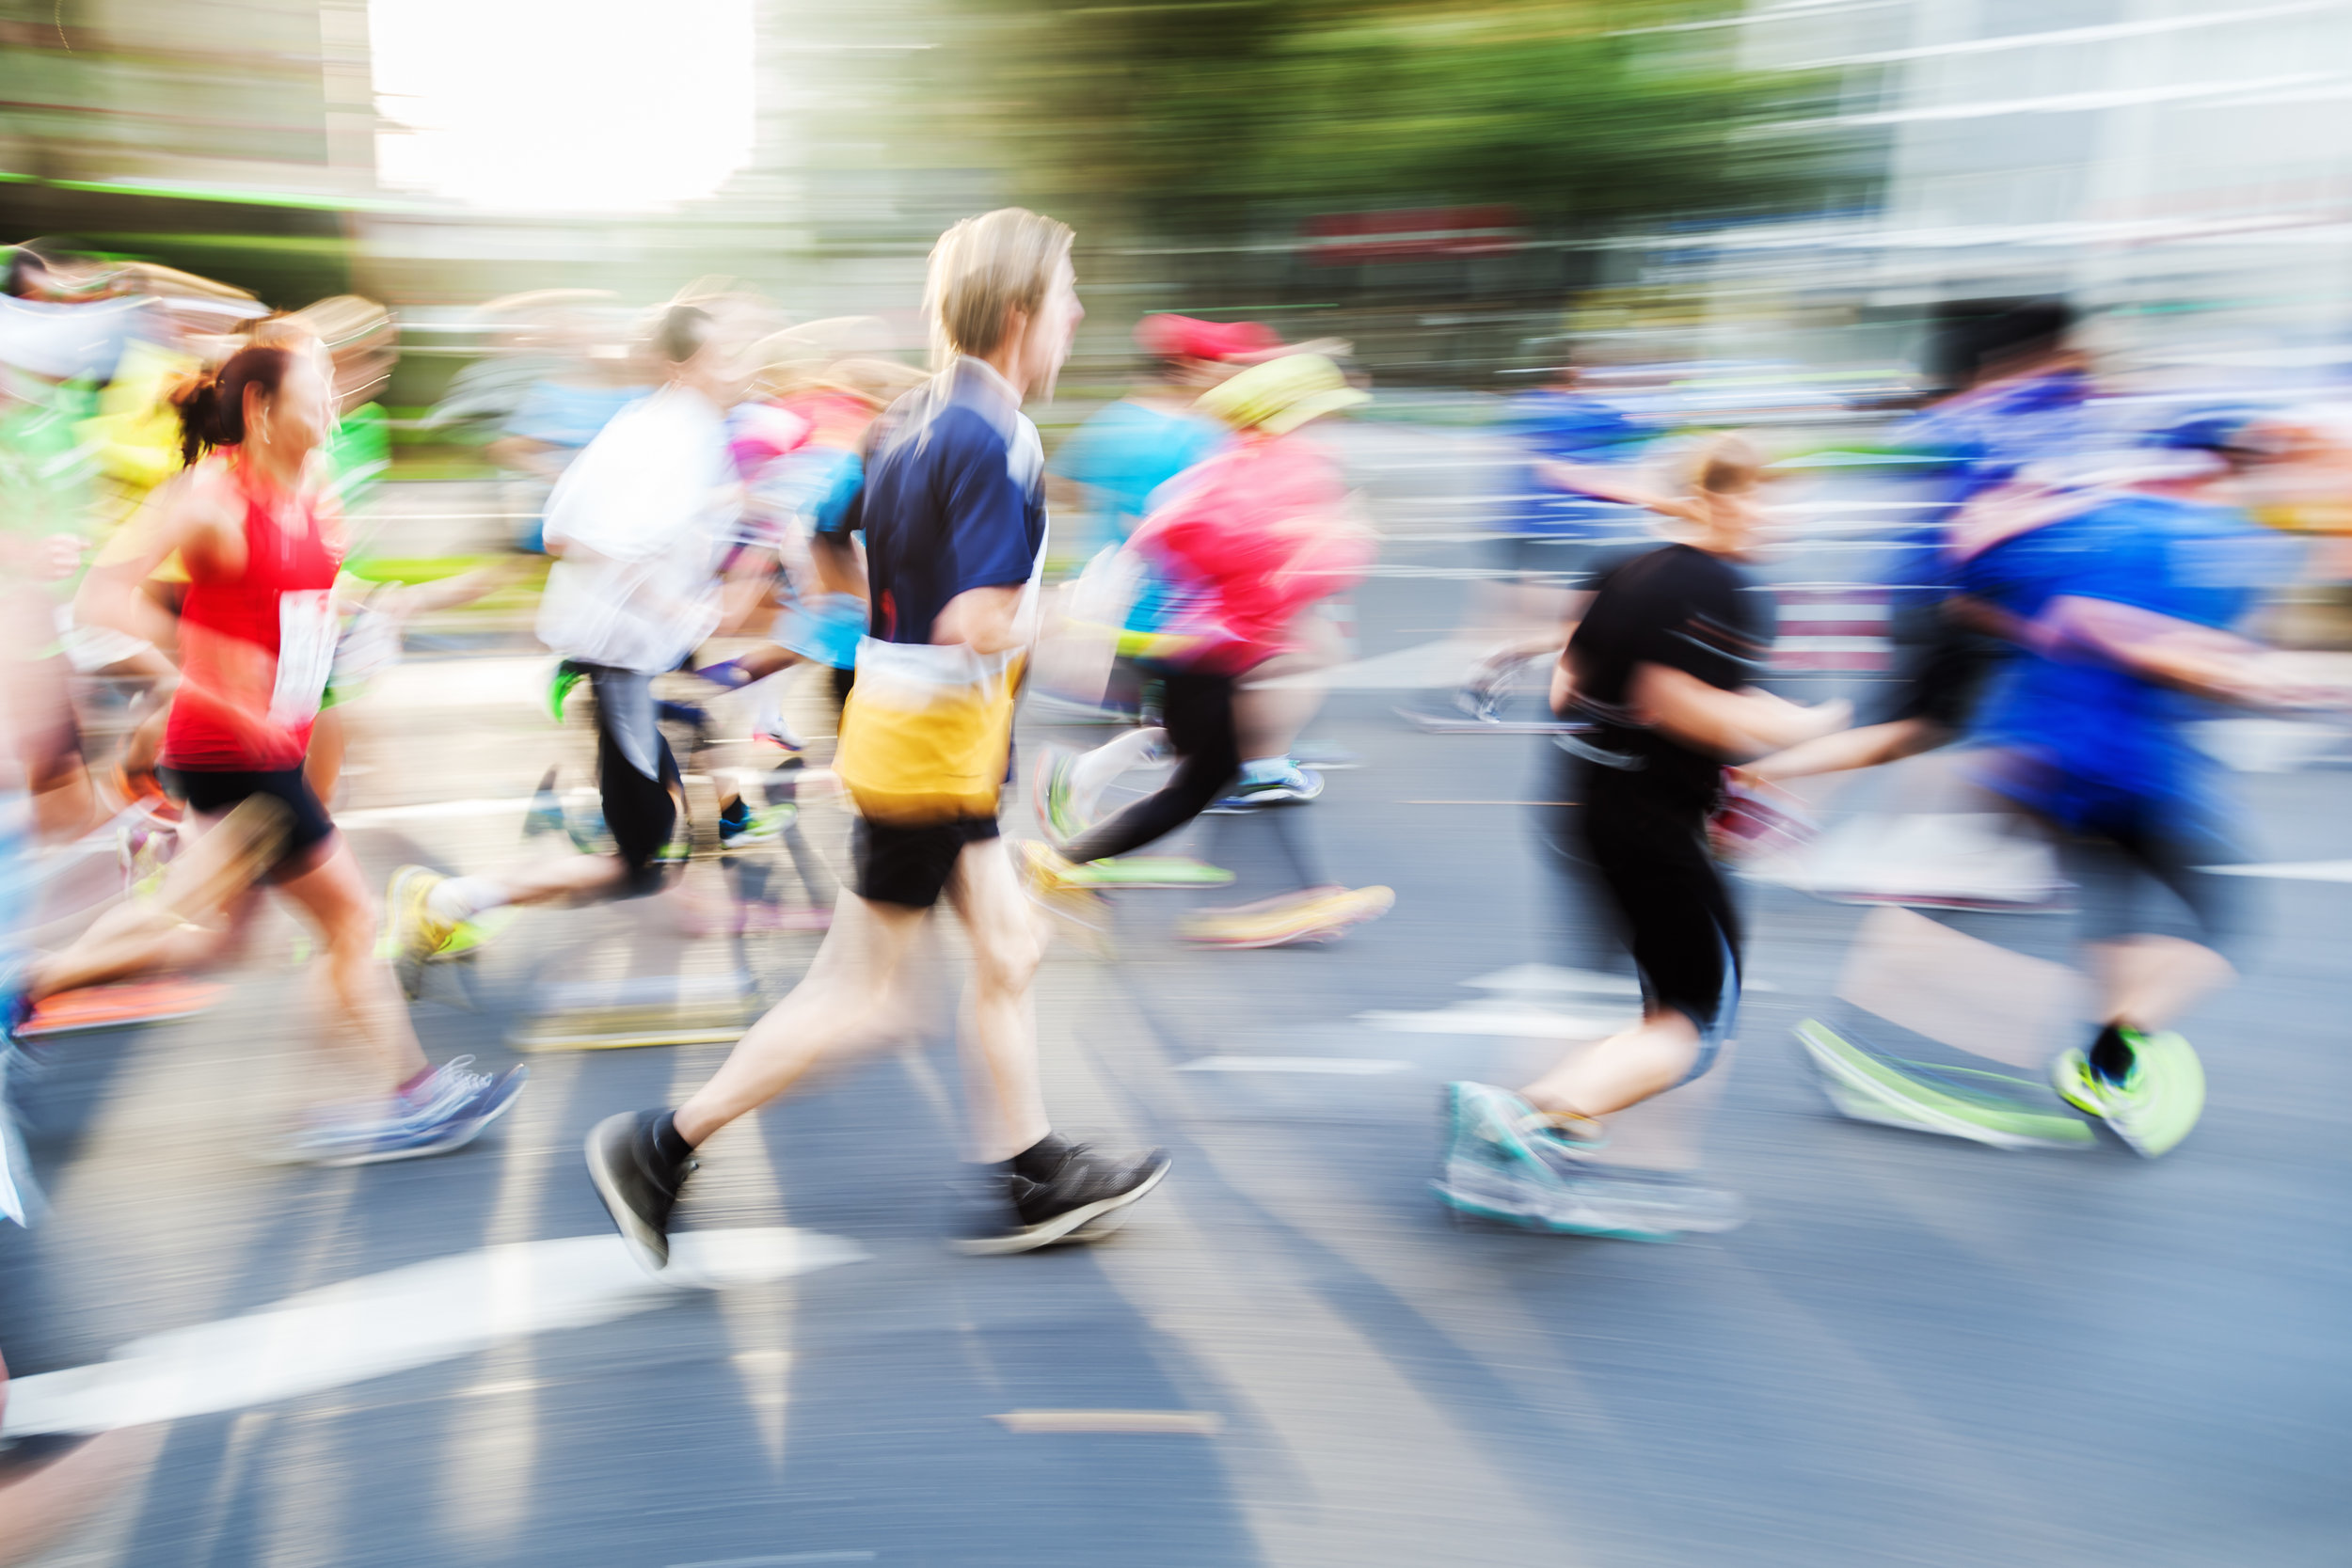 Marketing Communications Lessons From The Heads Together Marathon Campaign